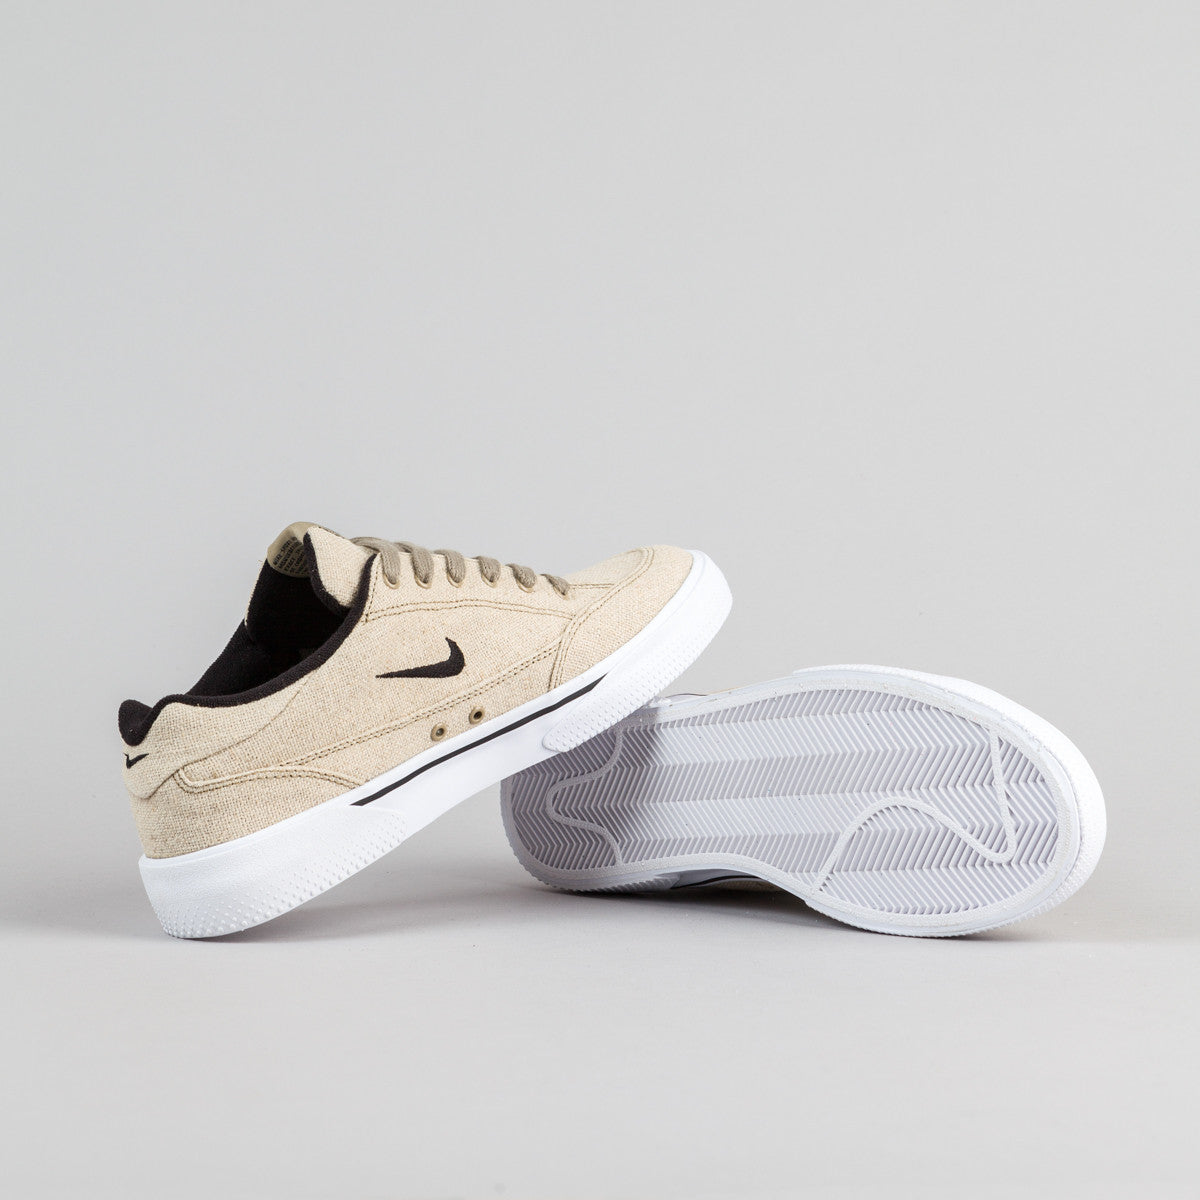 Nike SB Zoom GTS Shoes QS - Khaki / Black - White